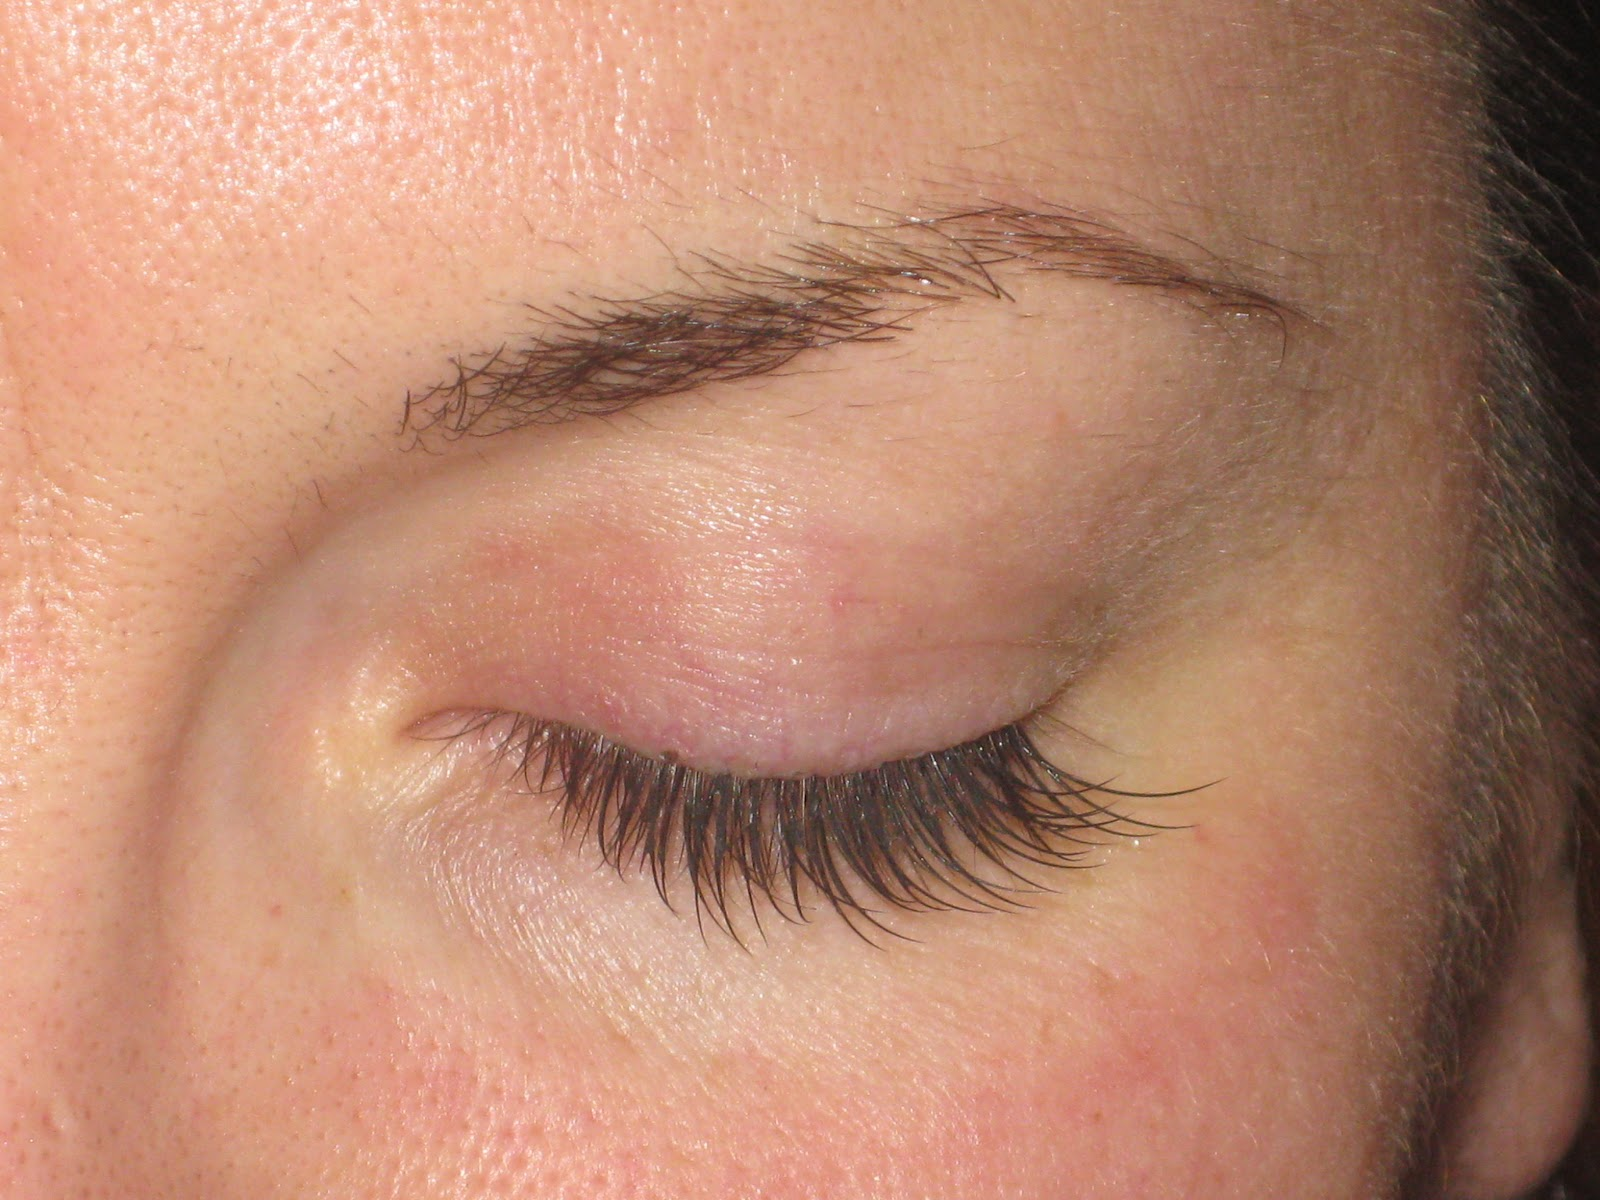 0e07e37070c Most customers enjoy a full set of lashes where between 70-100 lashes are  applied to each eye to create a natural but glamorous look.